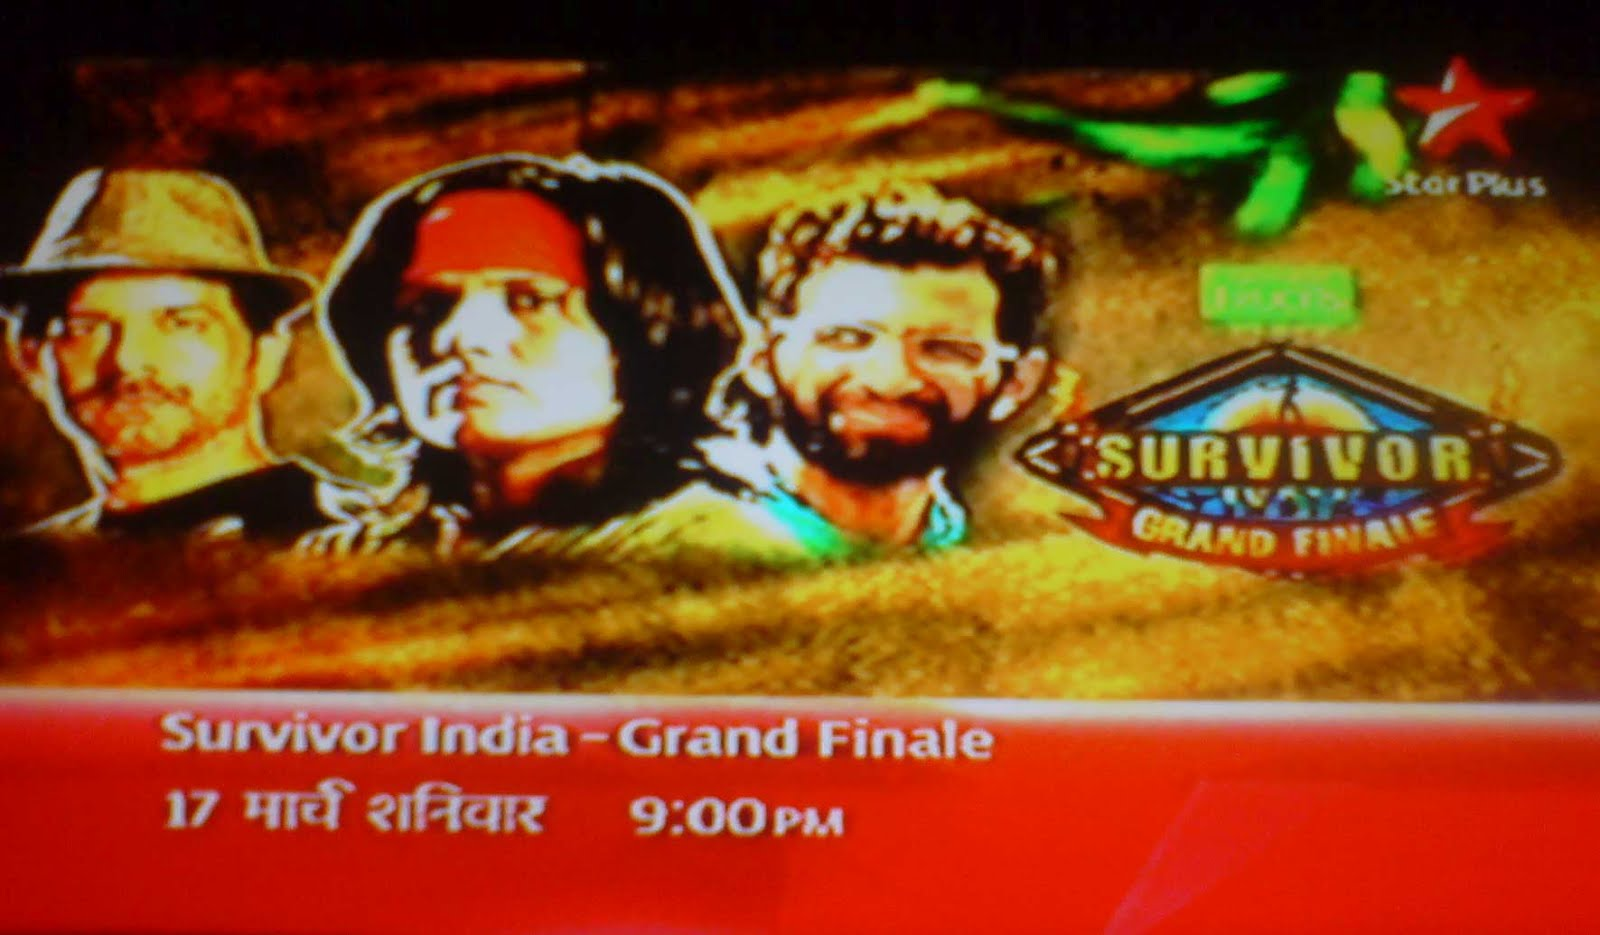 of Survivor India in the Grand Finale of Survivor India on Star Plus